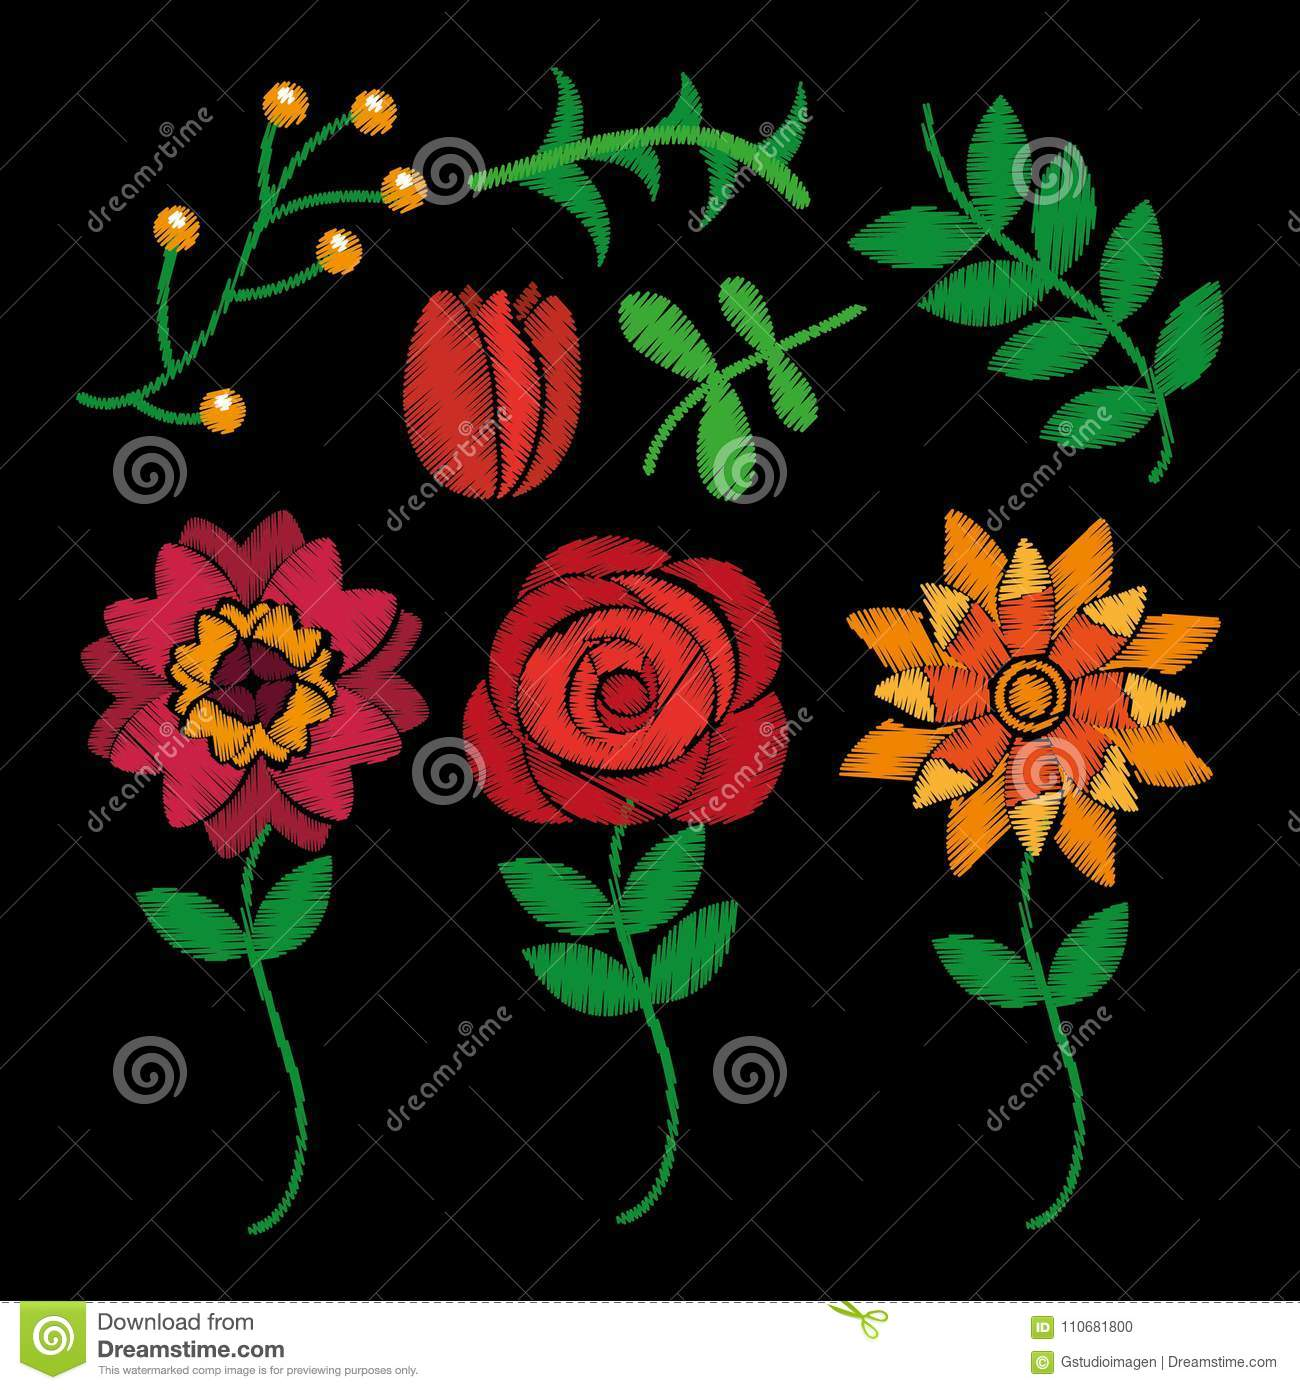 Fashion Embroidery Stitches Flowers And Leaves Floral Stock Vector